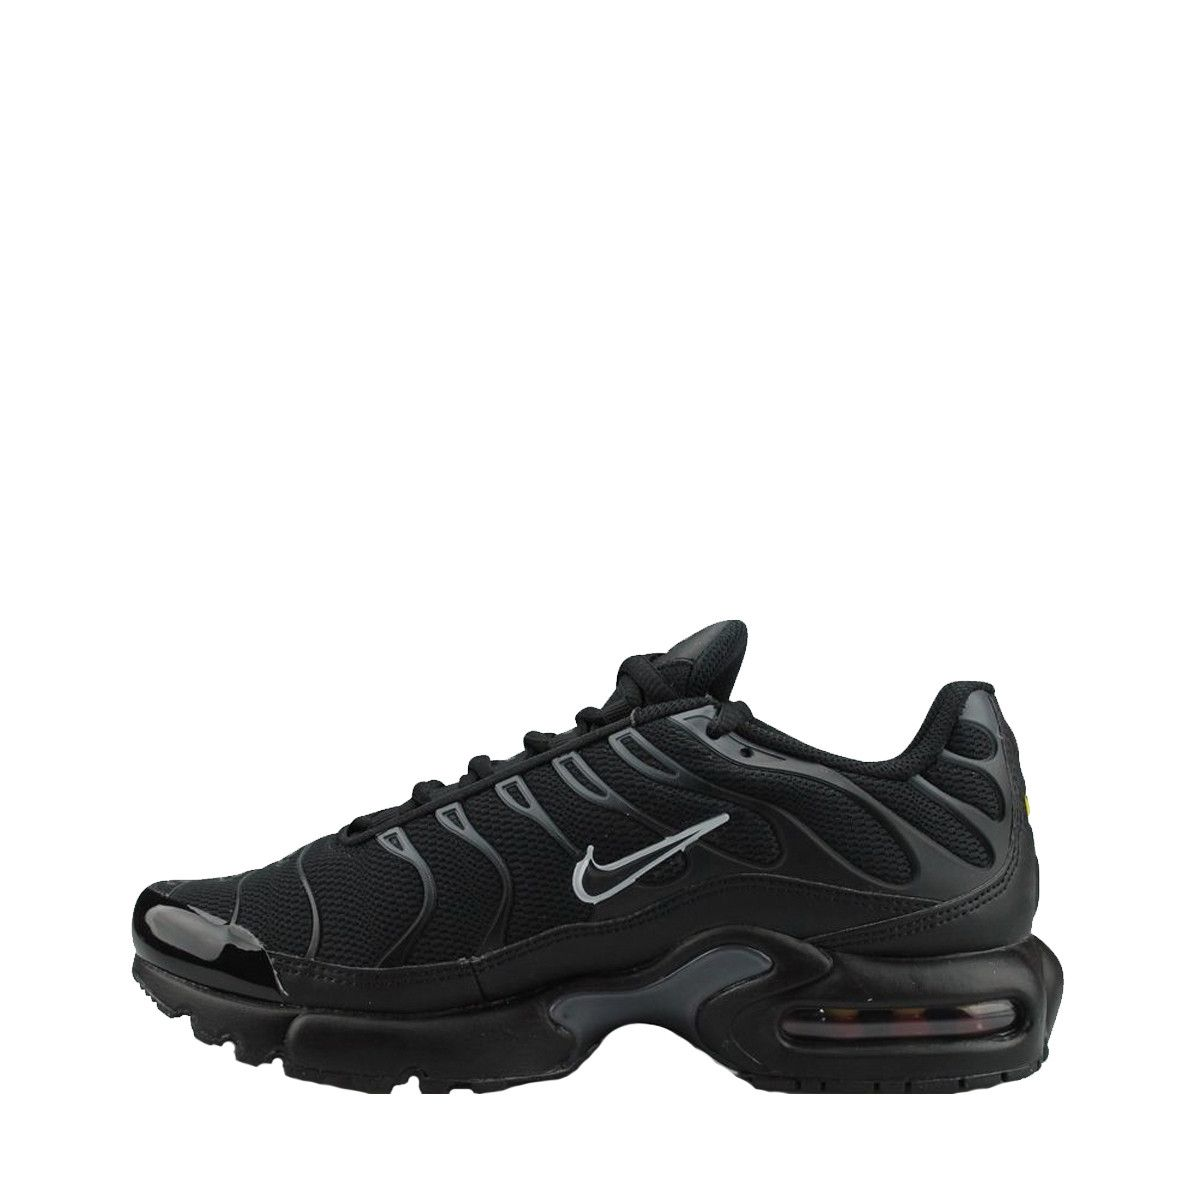 e6c351853c143 Nike Basket Nike Air Max Plus Junior - 655020-053. Loading zoom